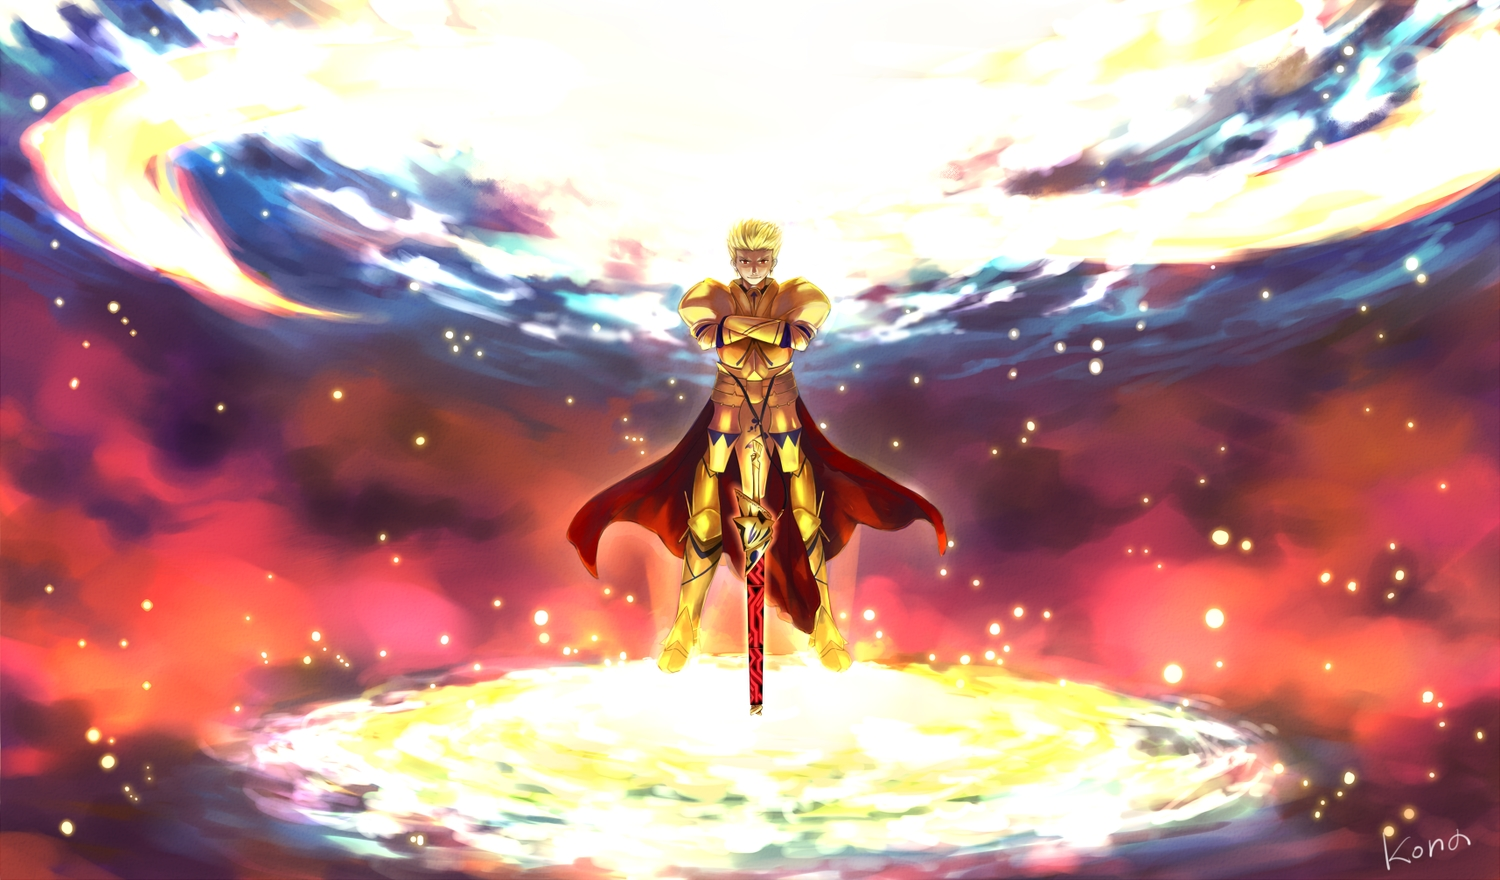 all_male armor fate/extra fate/grand_order fate_(series) gilgamesh kona_(mmm3608) male signed sword weapon